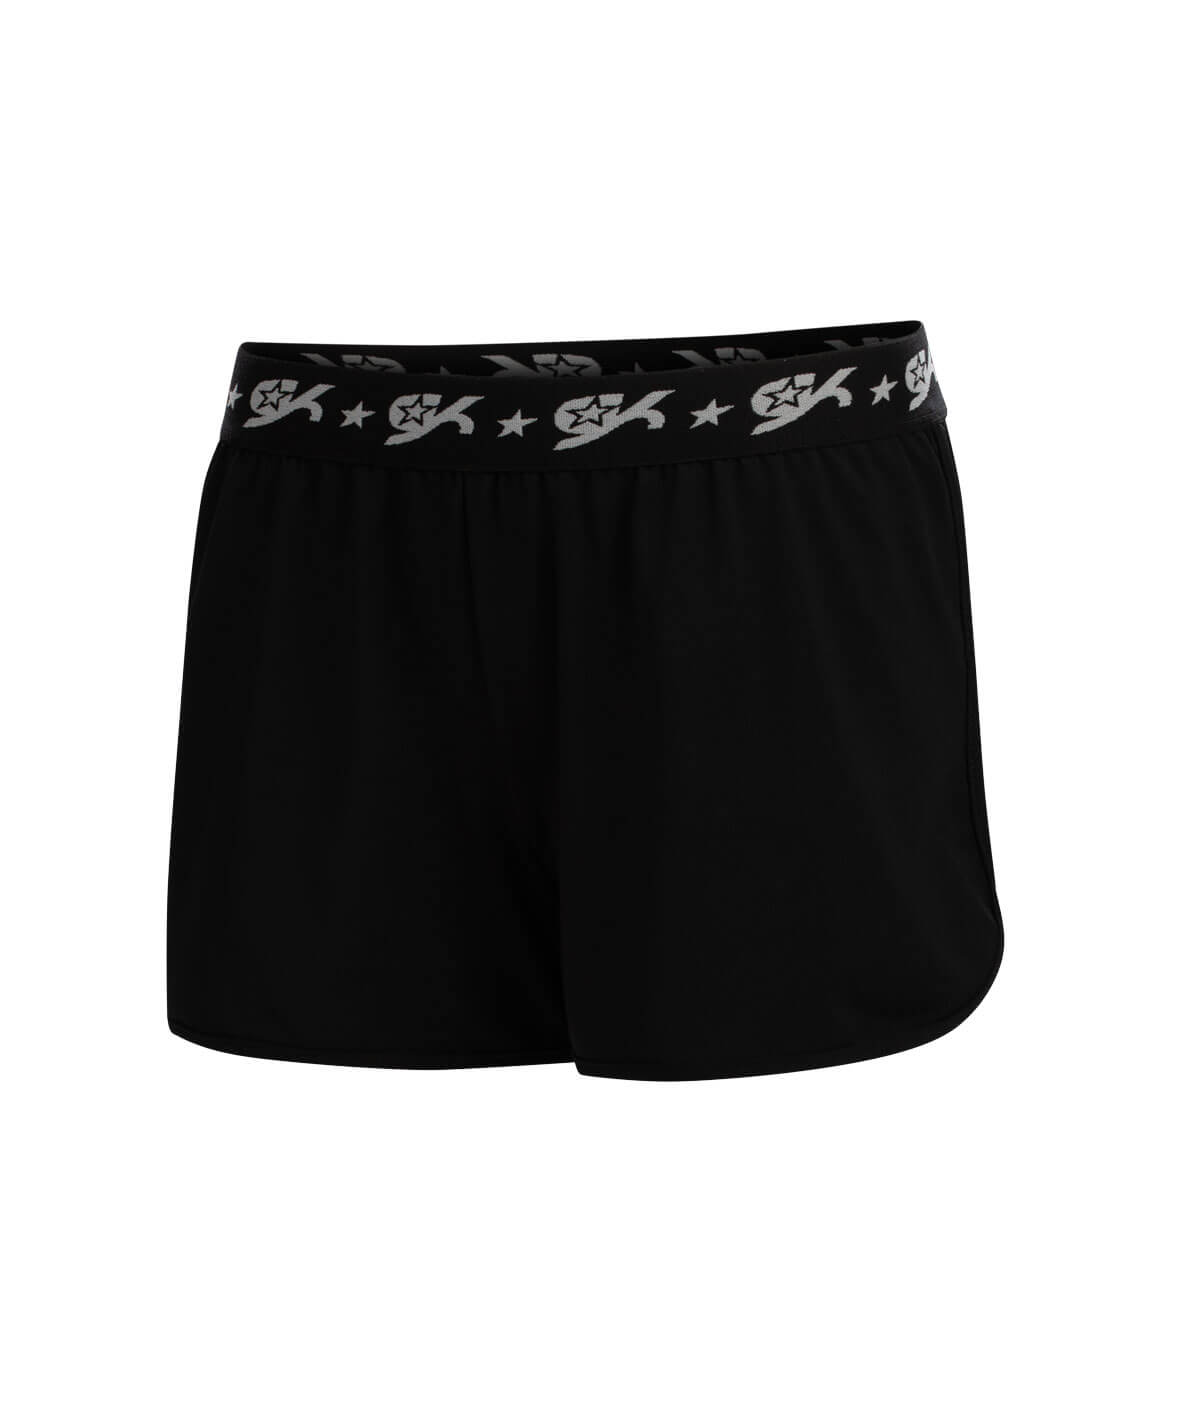 GK All Star Banded Relaxed Short